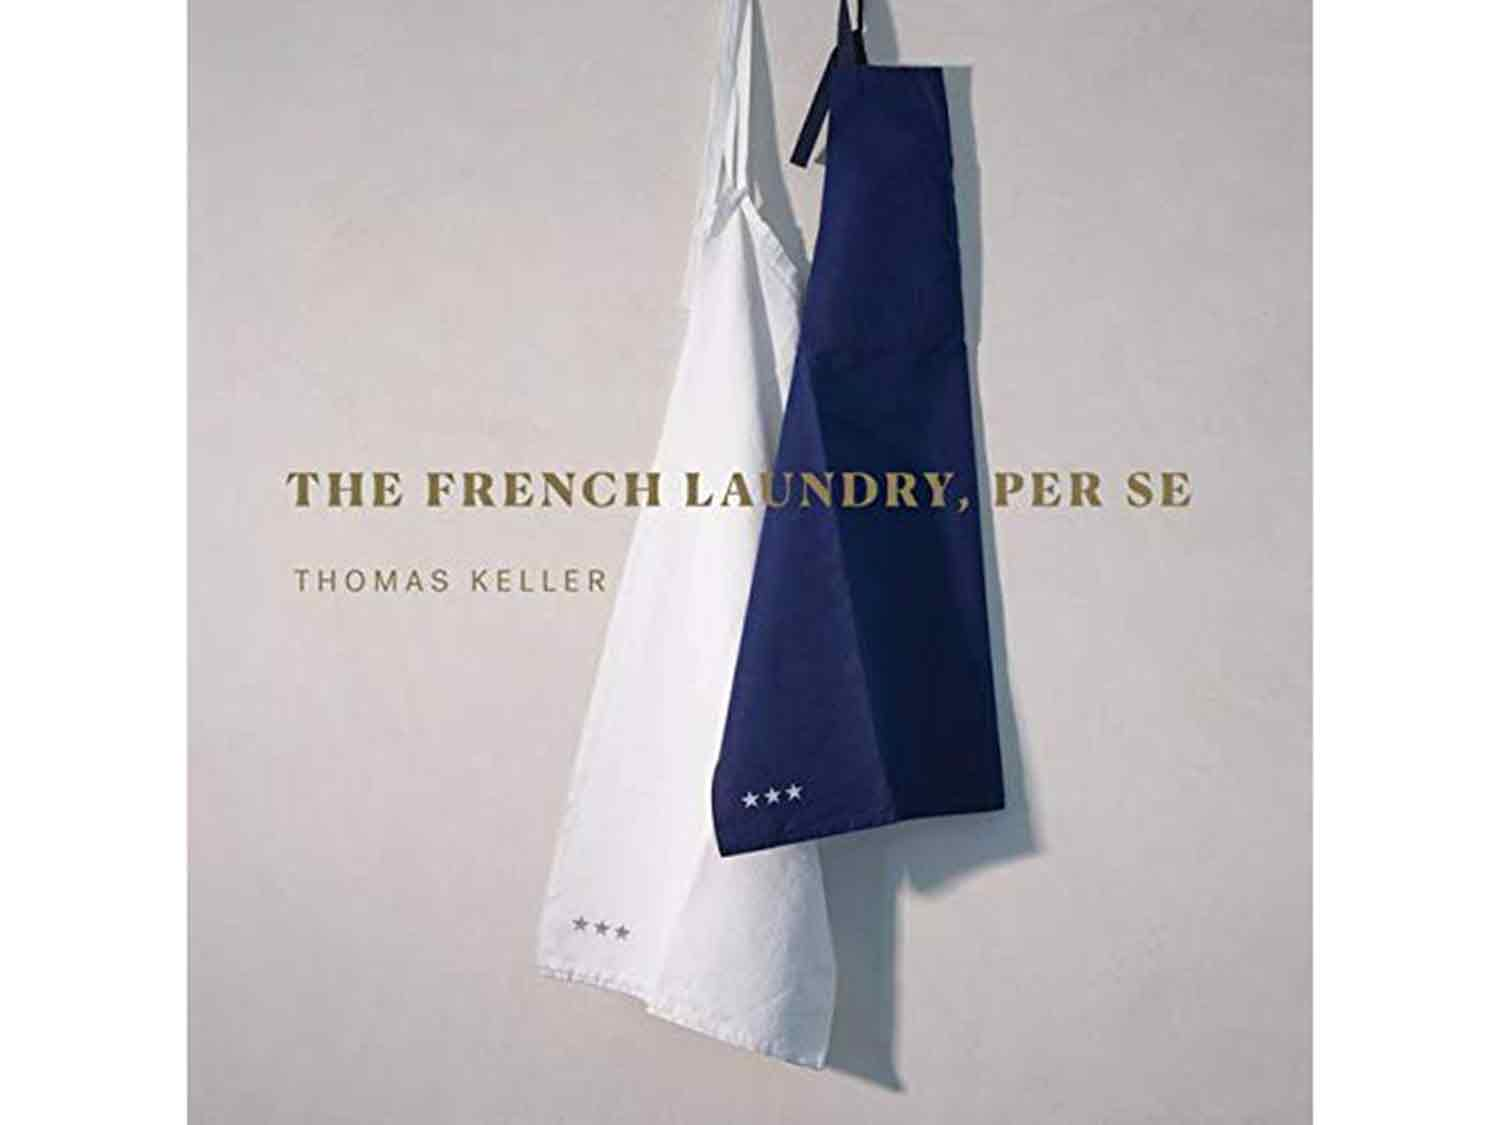 The French Laundry, Per Se